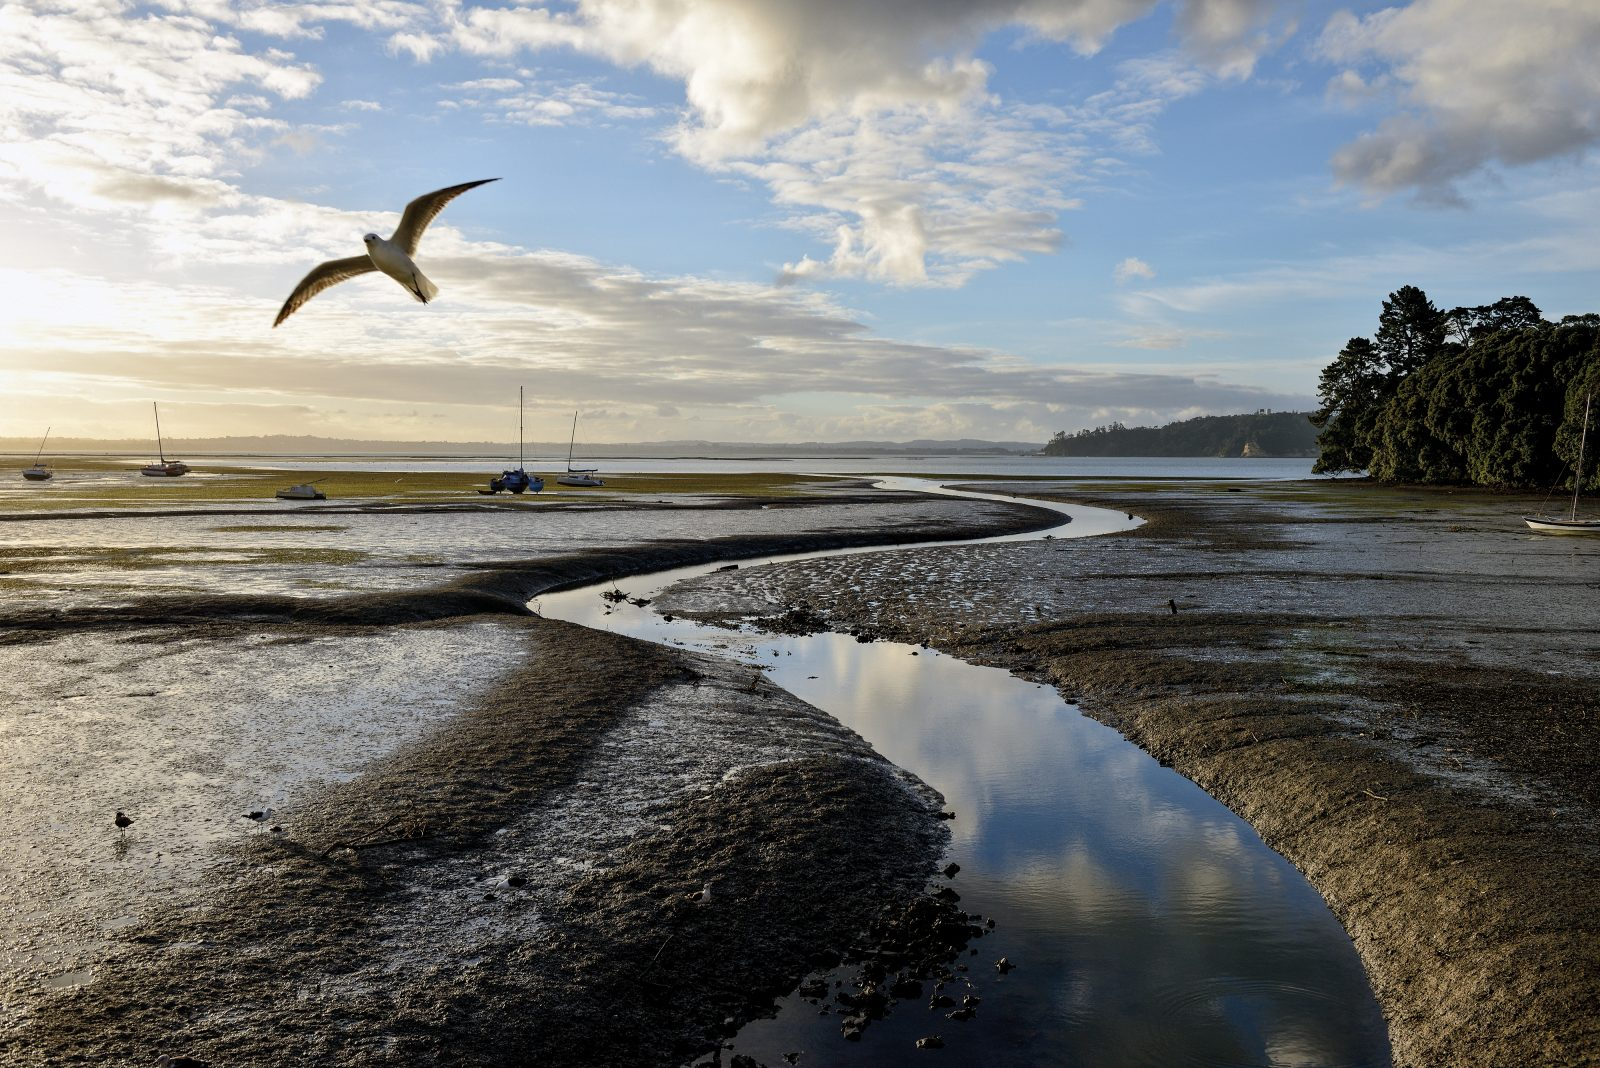 There are rich pickings for gulls and poor prospects for people at Cox's Bay, in Westmere, where a stormwater outlet periodically discharges sewage and sink wastes. The objectionable cocktail is the legacy of early Auckland's decision to channel stormwater and wastewater in the same pipes. This beach has been declared permanently unsafe for swimming.